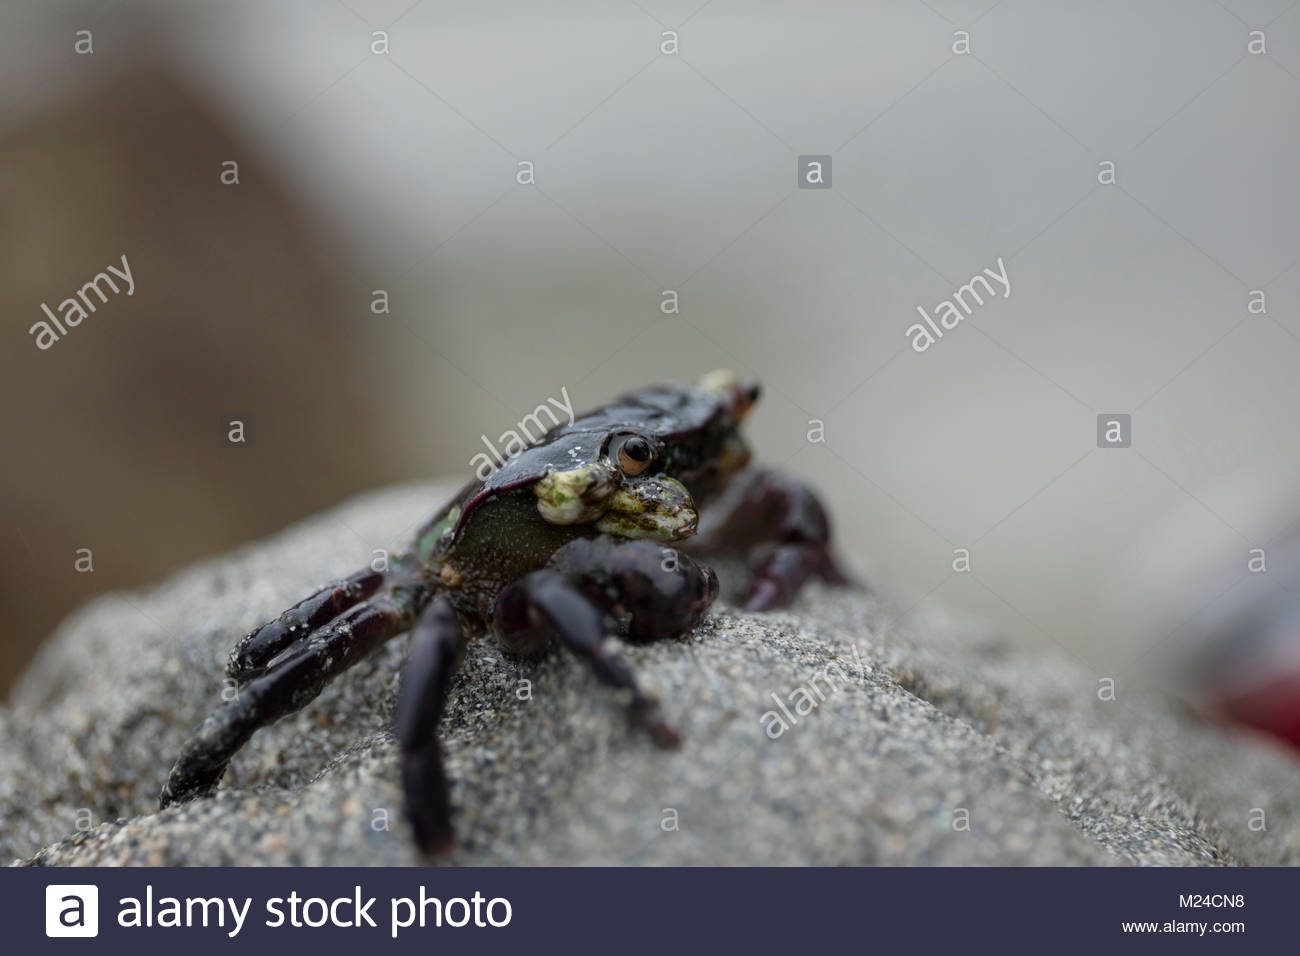 Extreme close up black sand crab - Stock Image